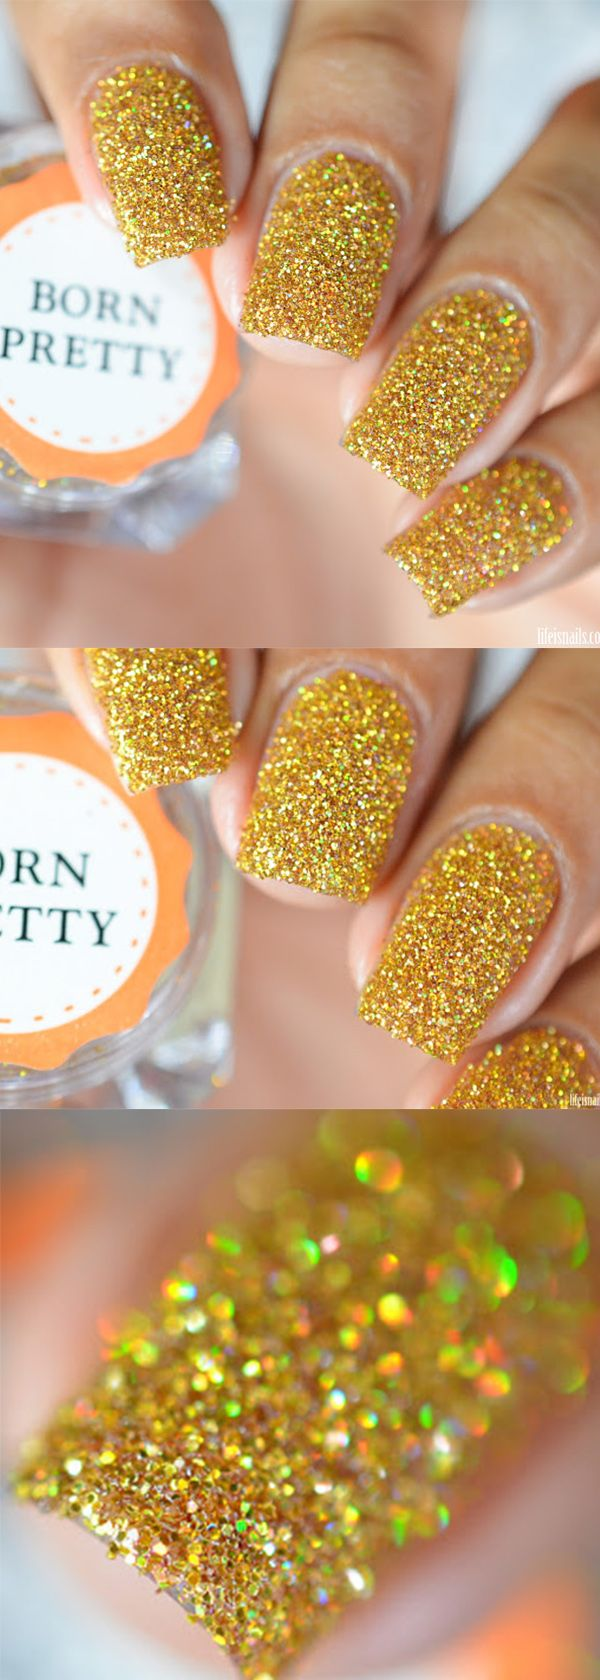 bornpretty holographic laser powder nails, cool yellow color with ...